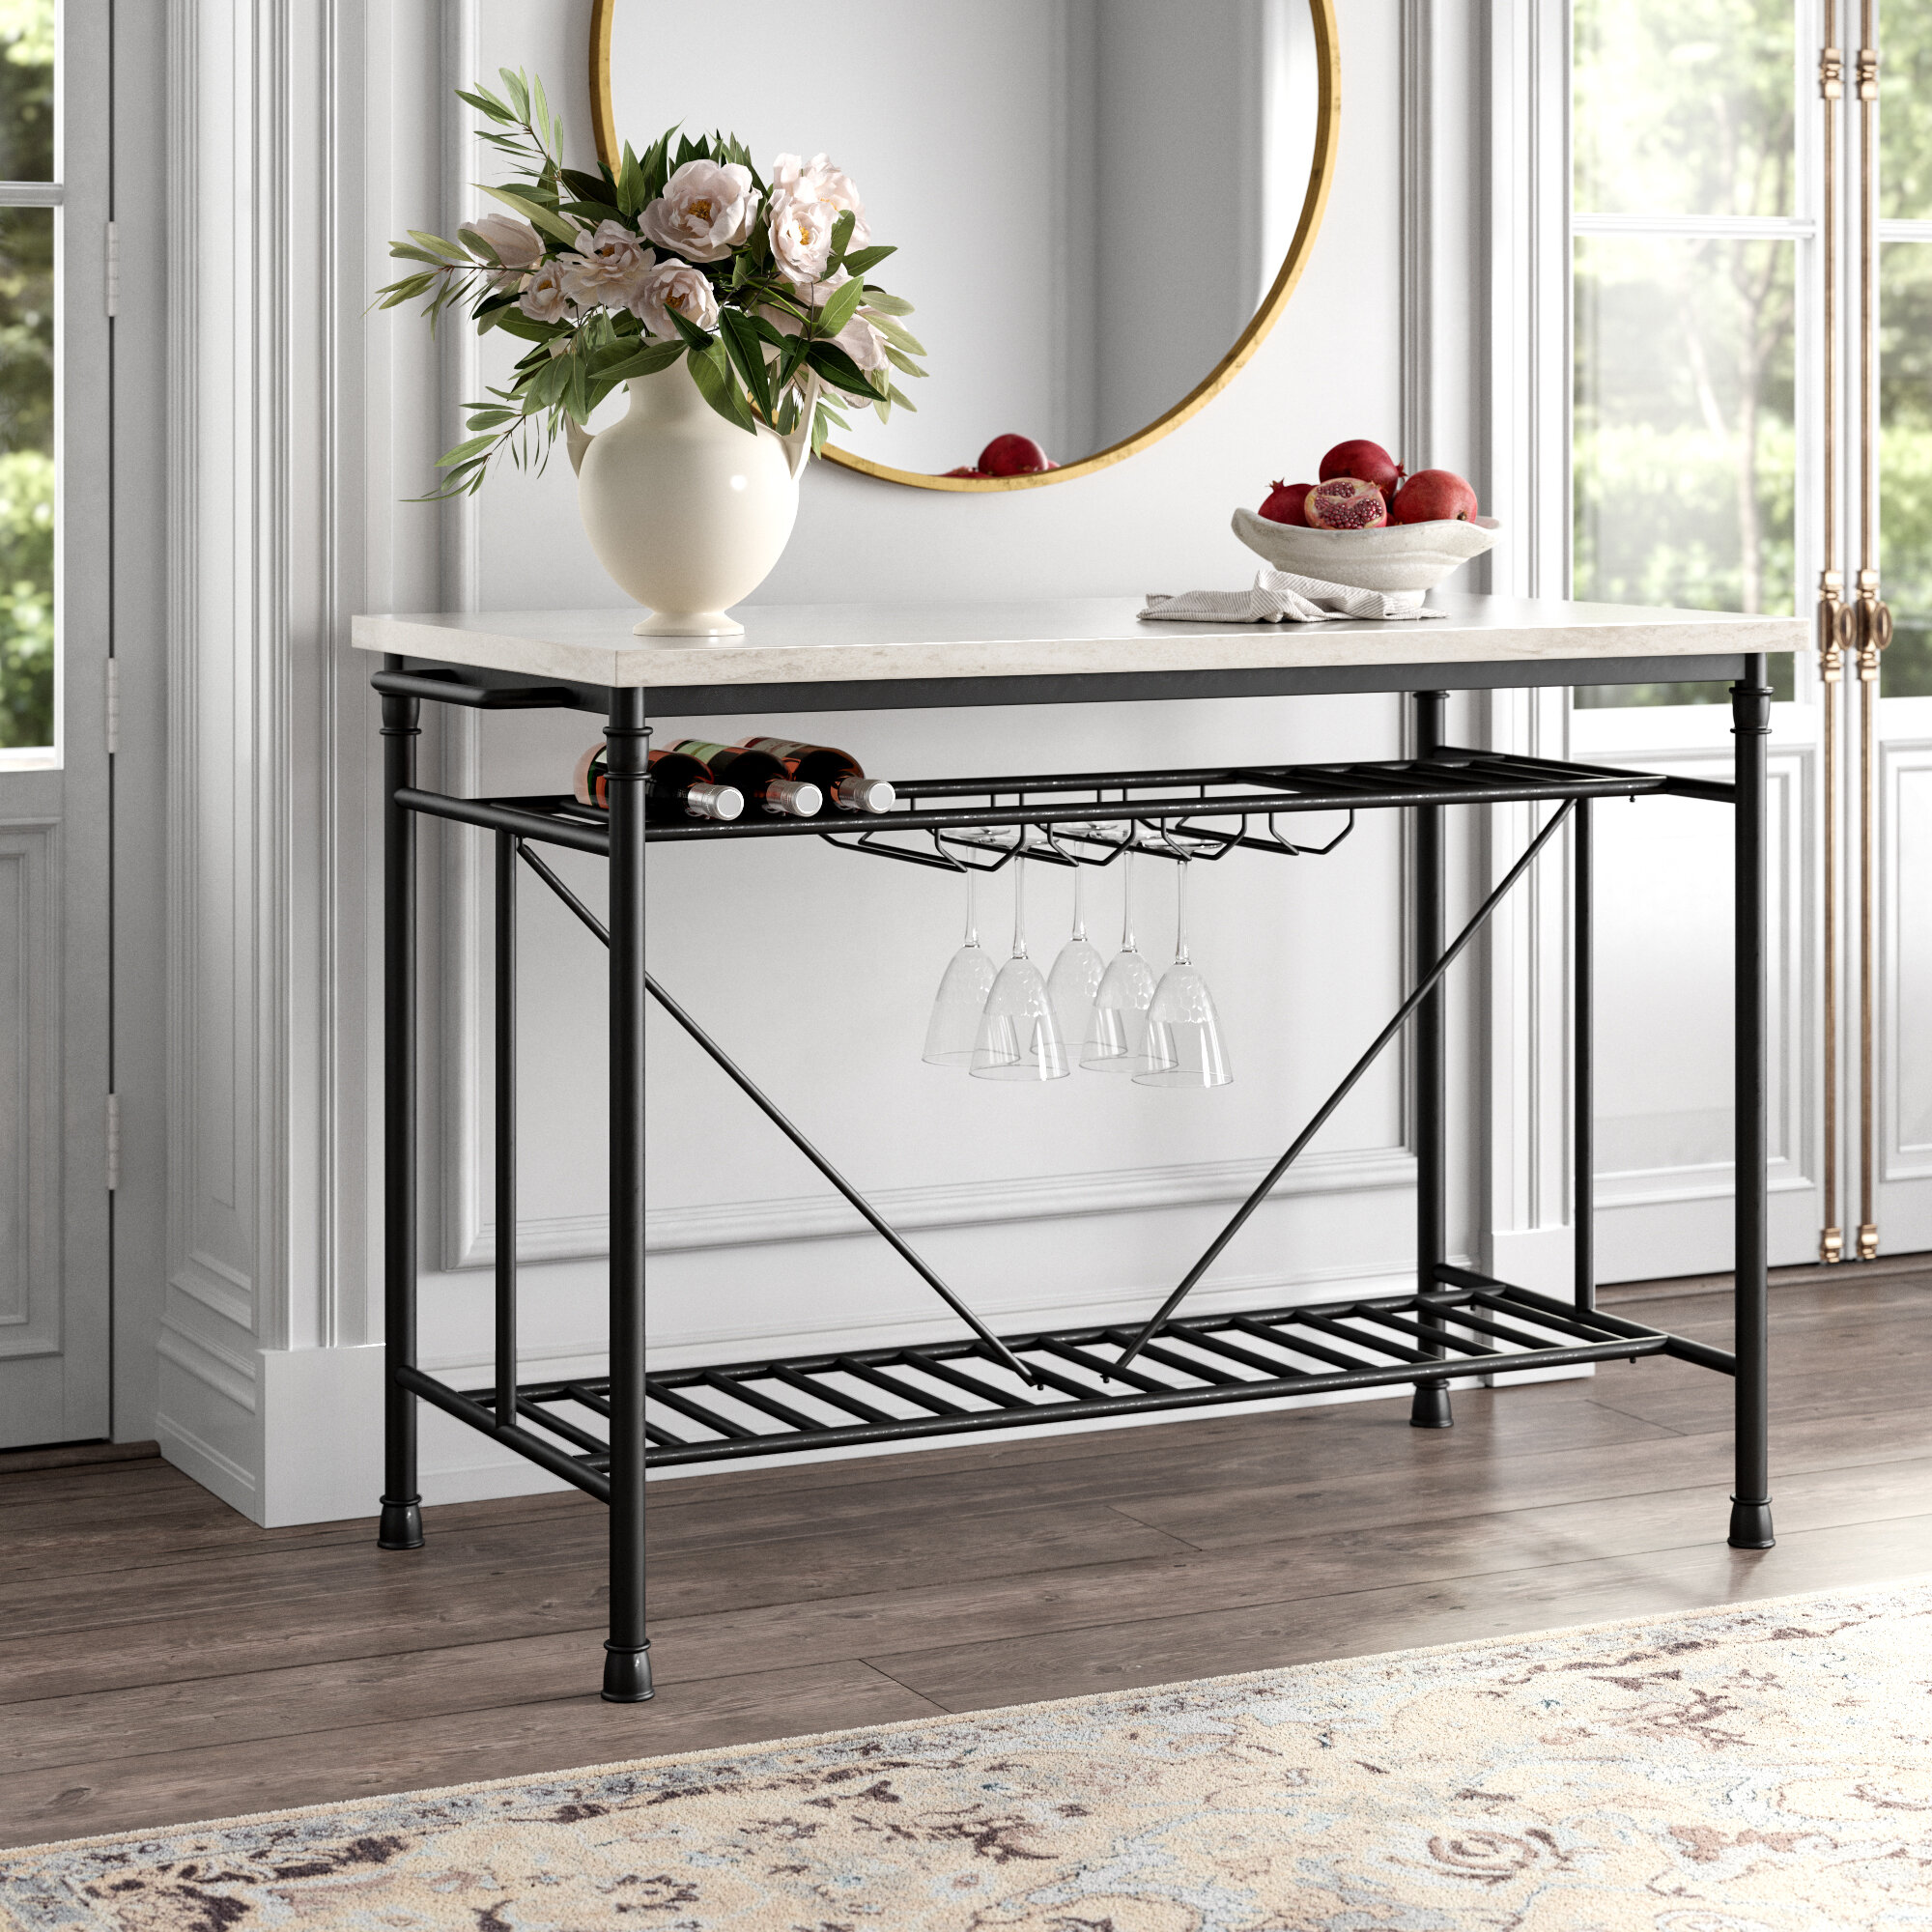 Kelly Clarkson Home Moran Kitchen Island With Marble Top Reviews